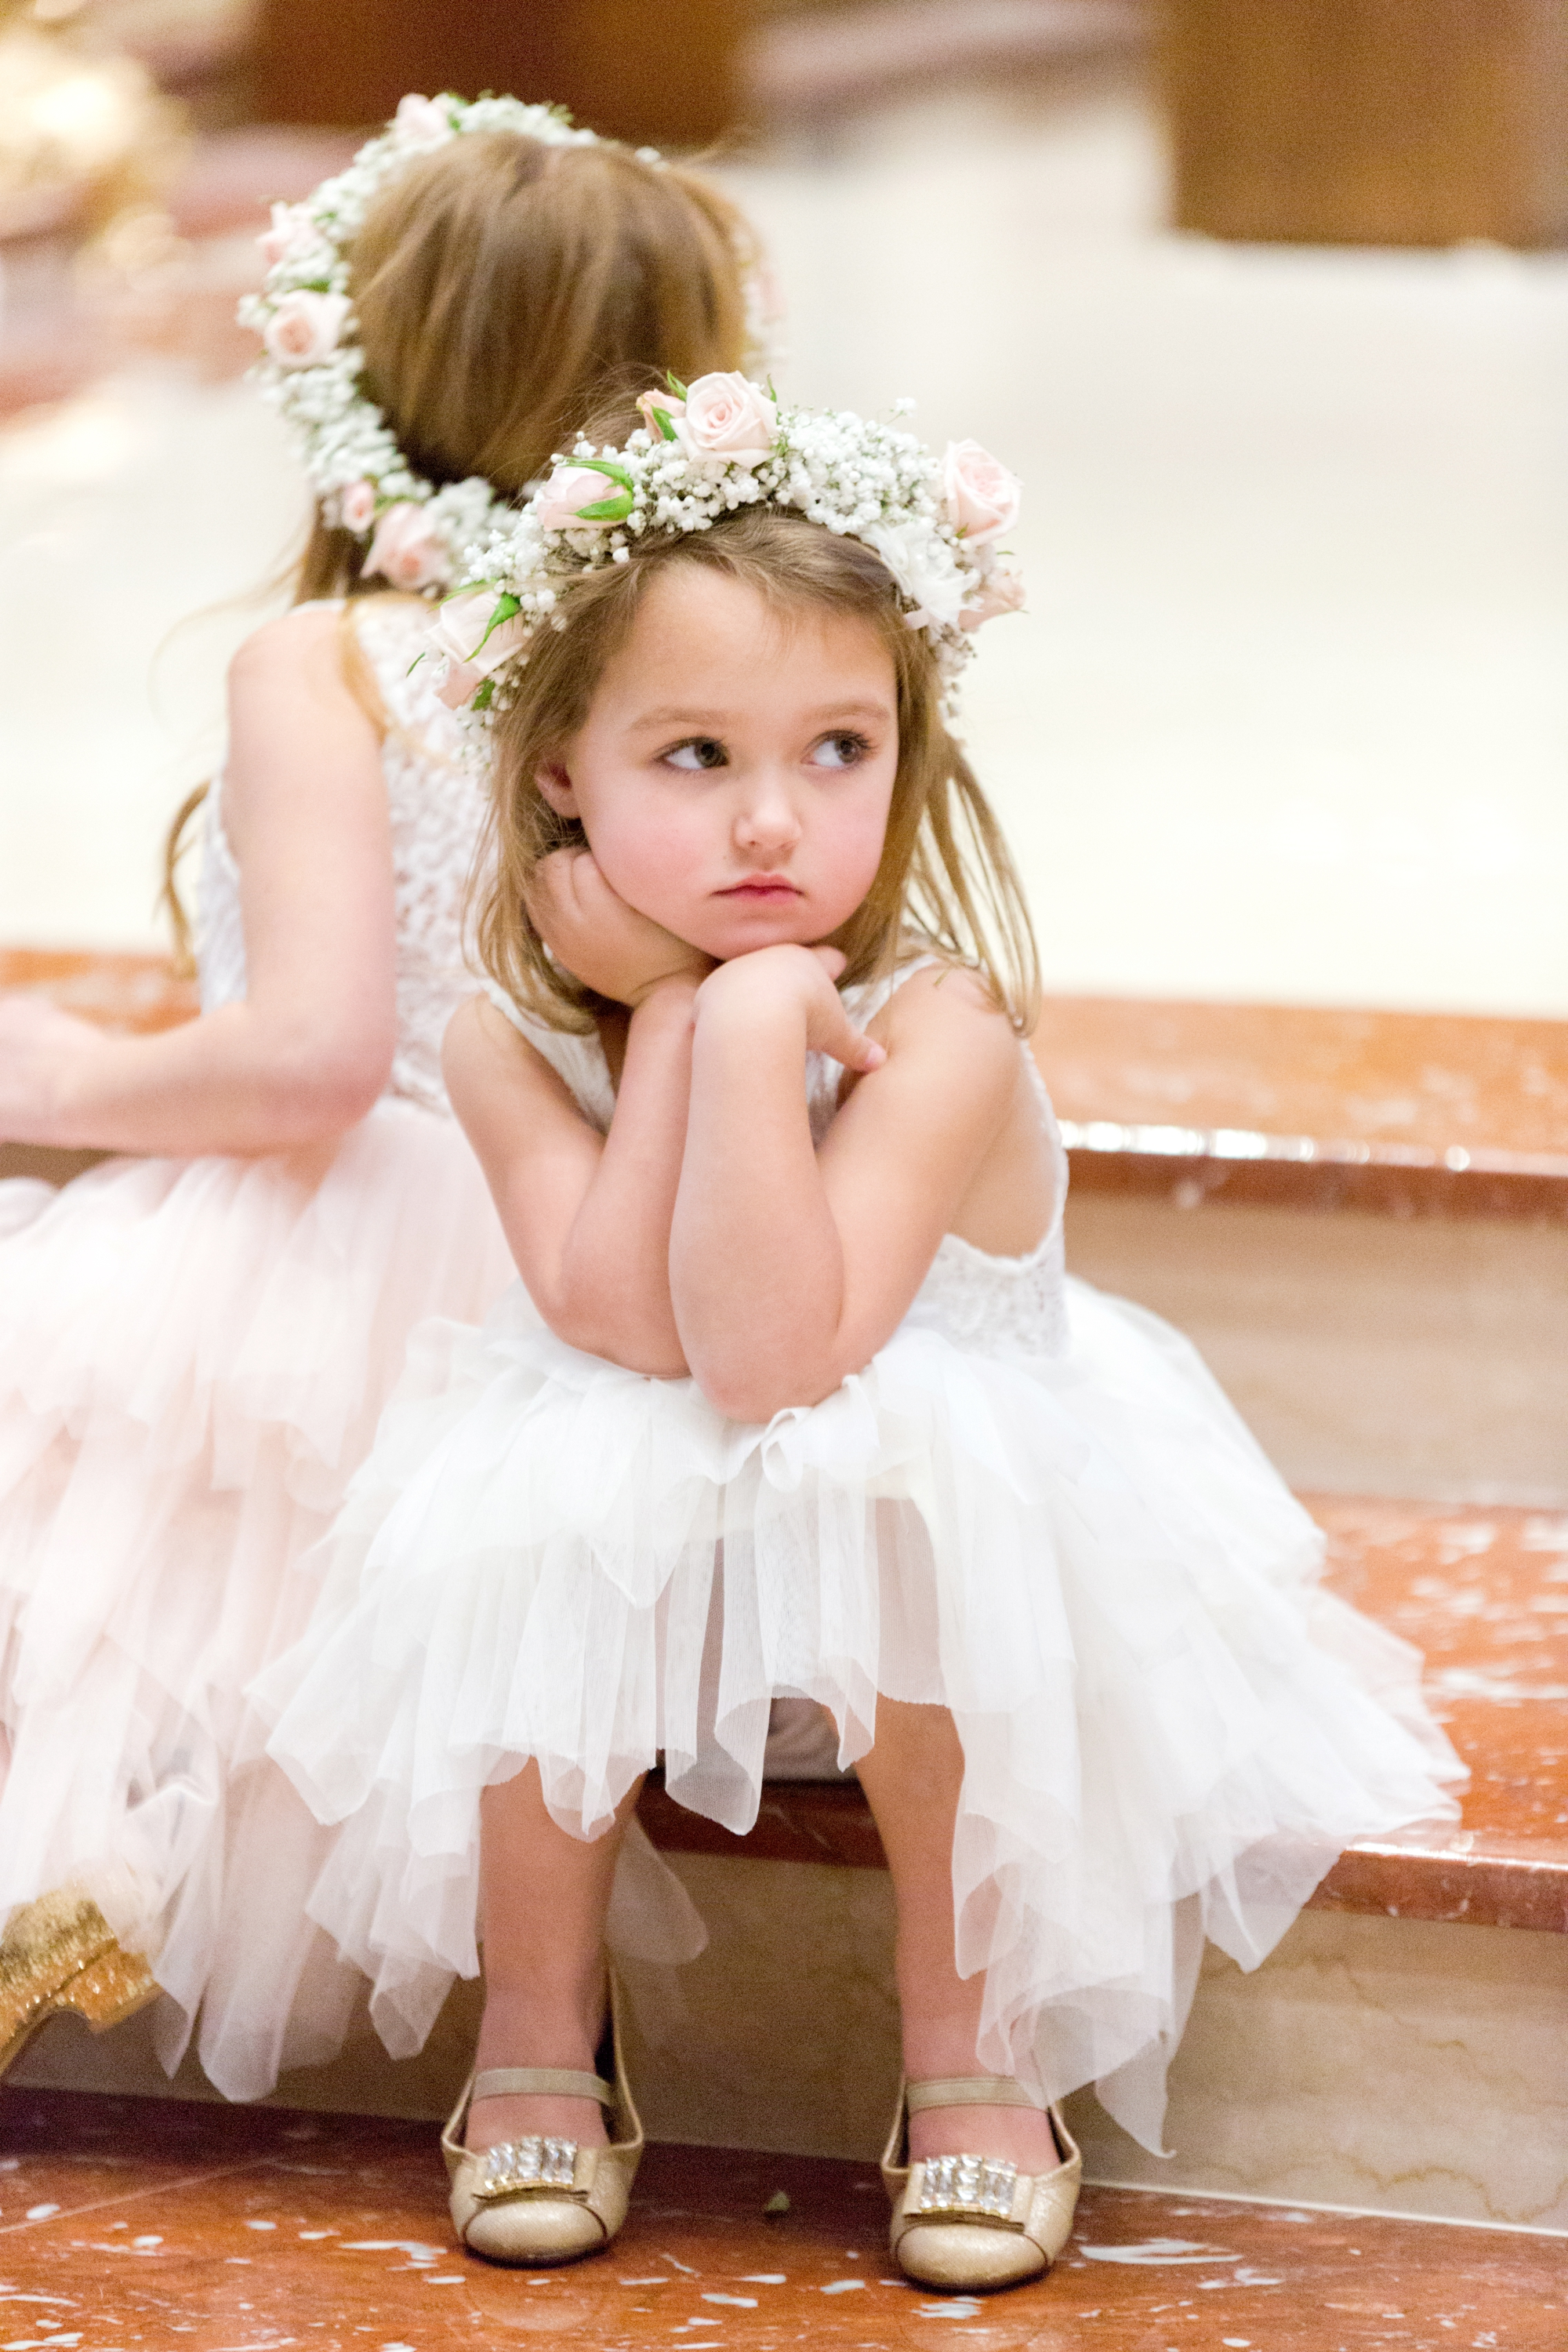 bored flower girl